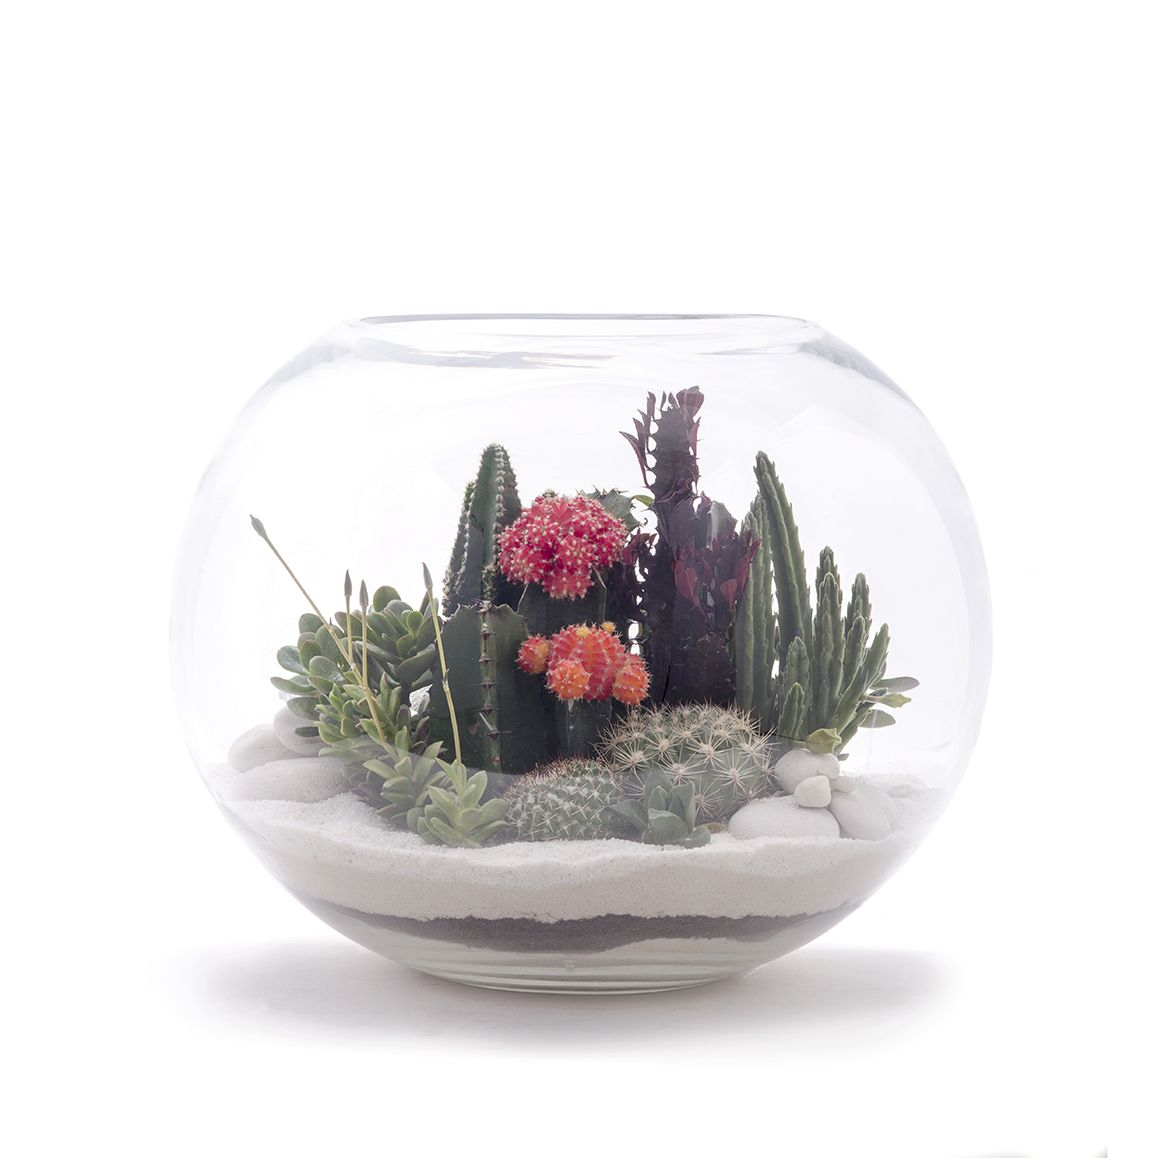 Fishbowl Large Terrarium - Plant The Future